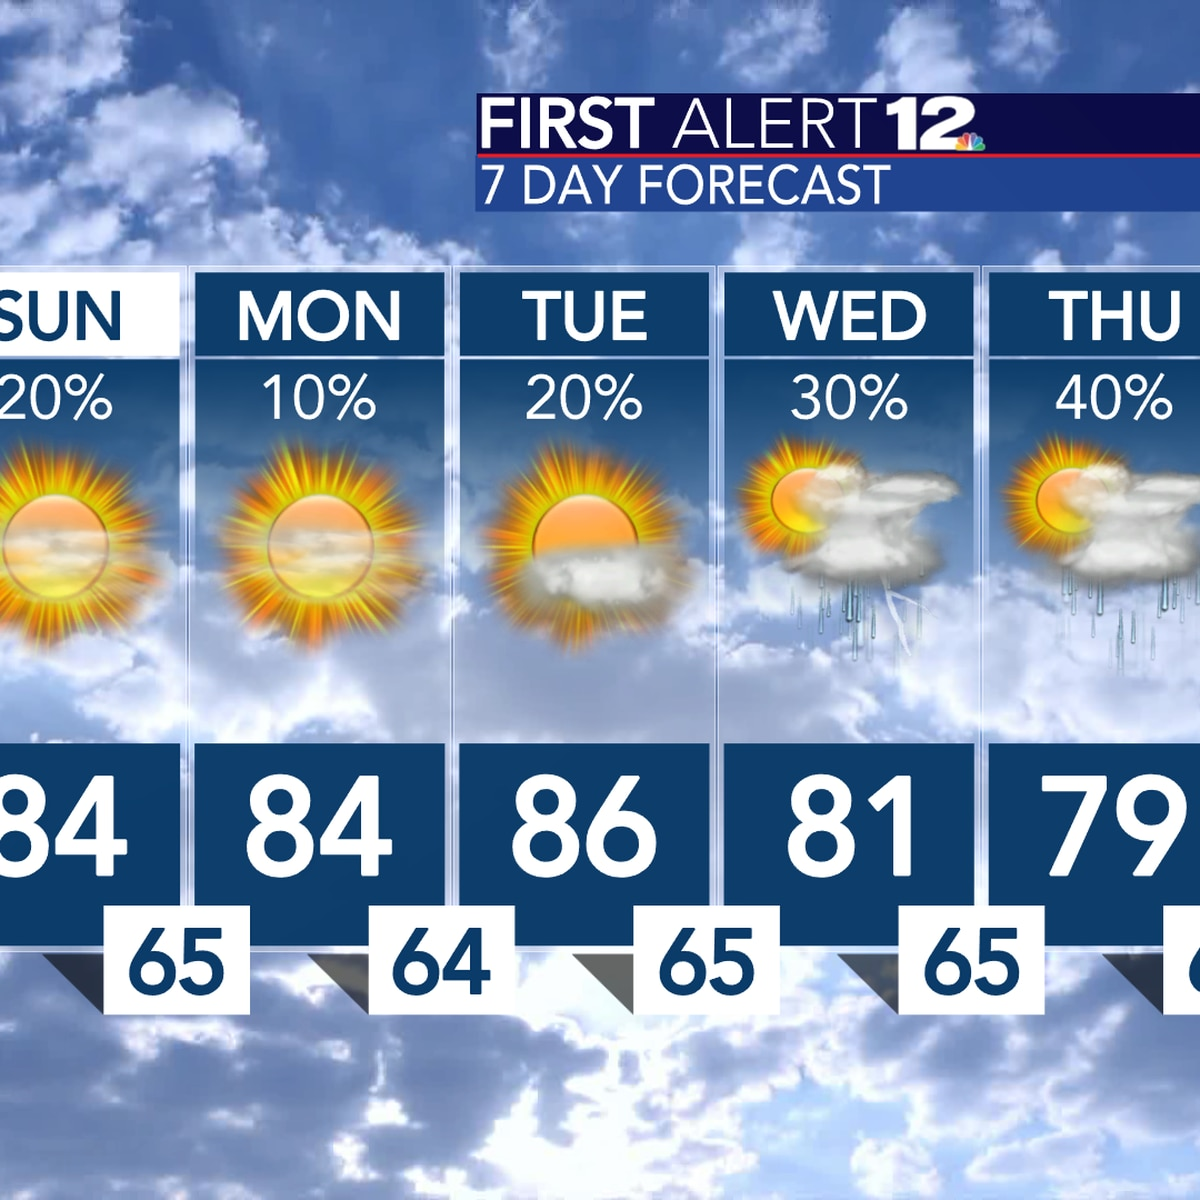 Warm with scattered rain Saturday